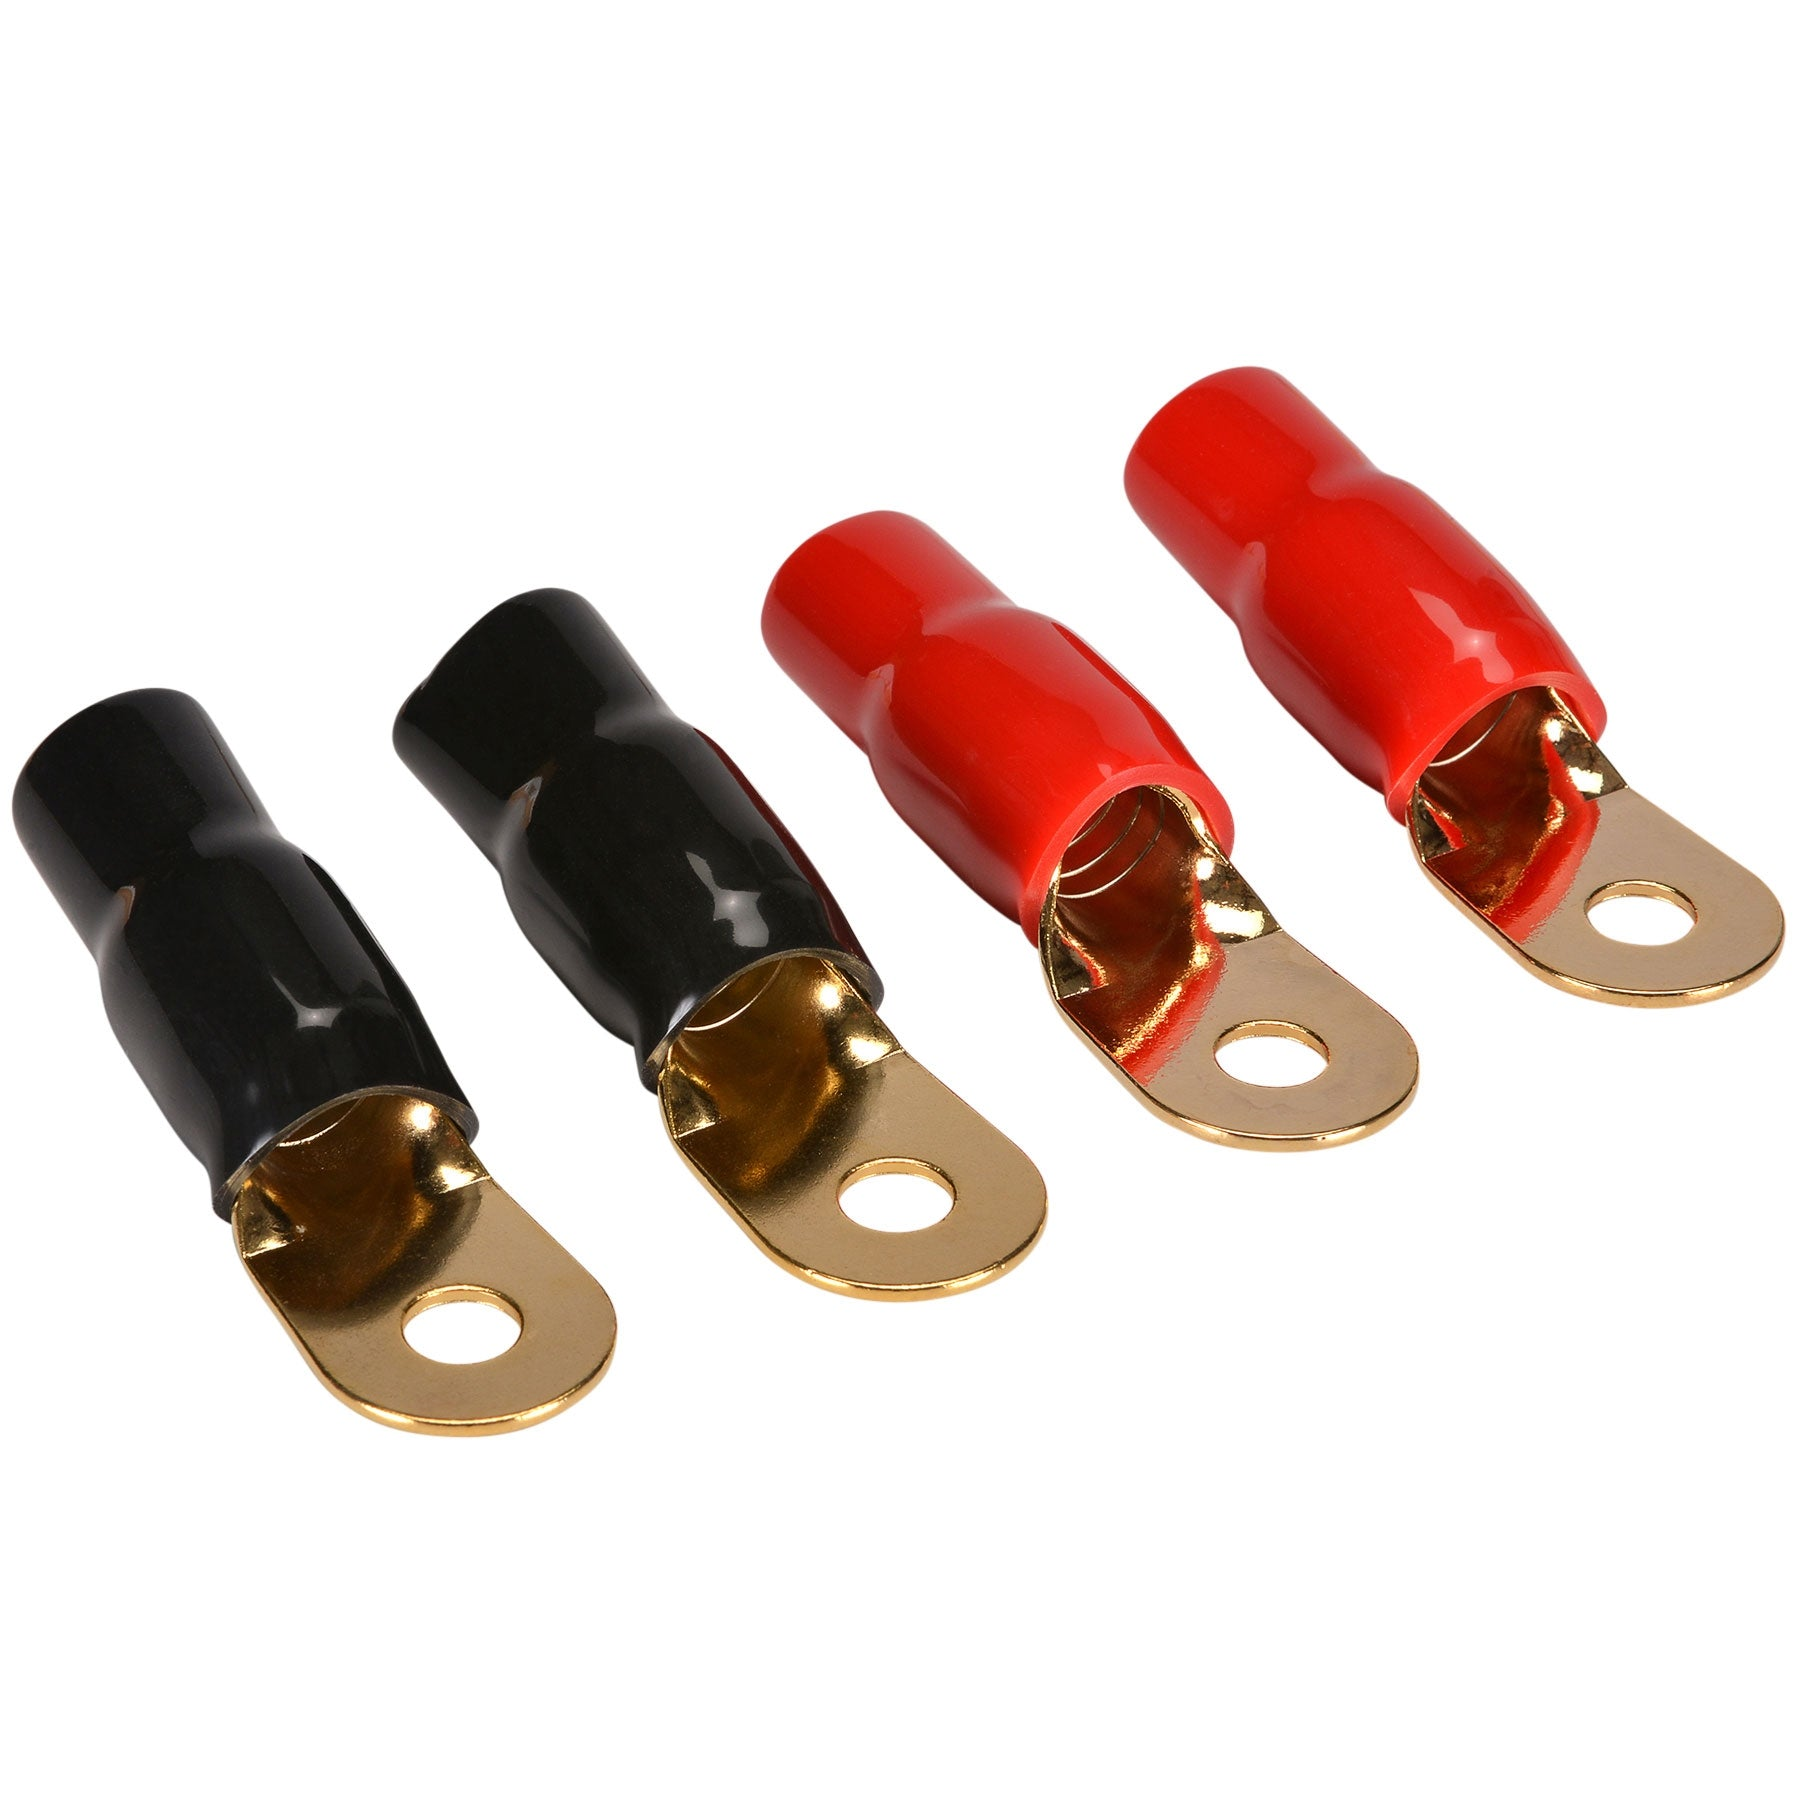 86-0010-XX Insulated Wire Cable Round Terminal Connectors Gold For 8 or 10 AWG